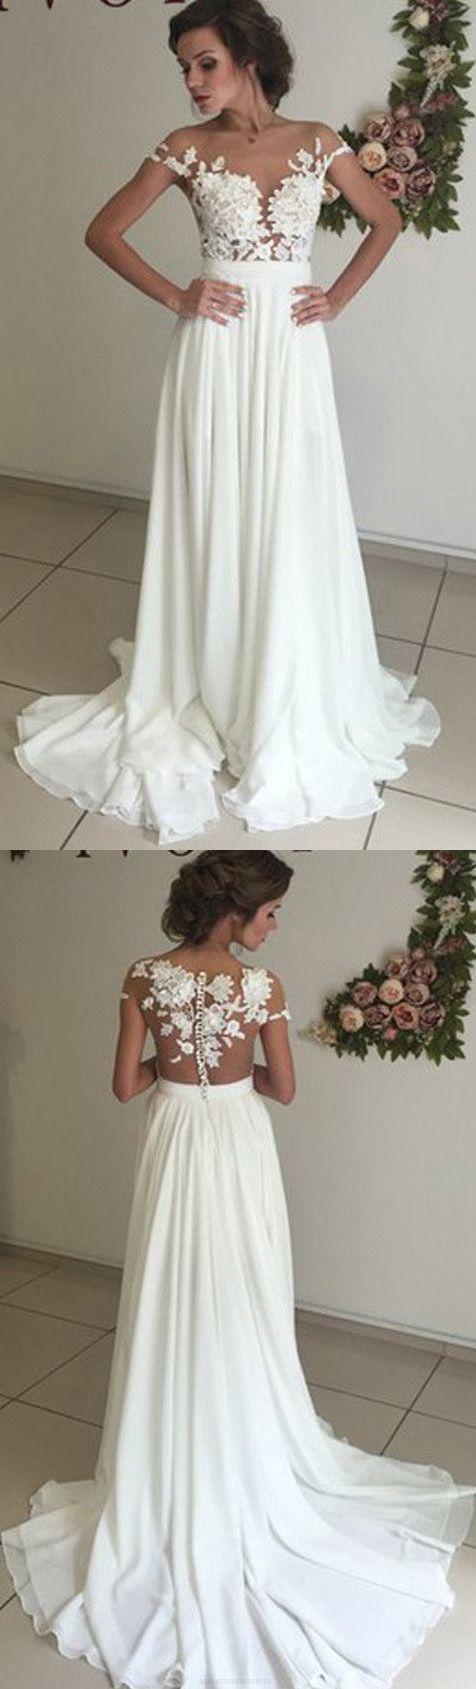 Ivory wedding dresses long wedding dresses wedding dresses